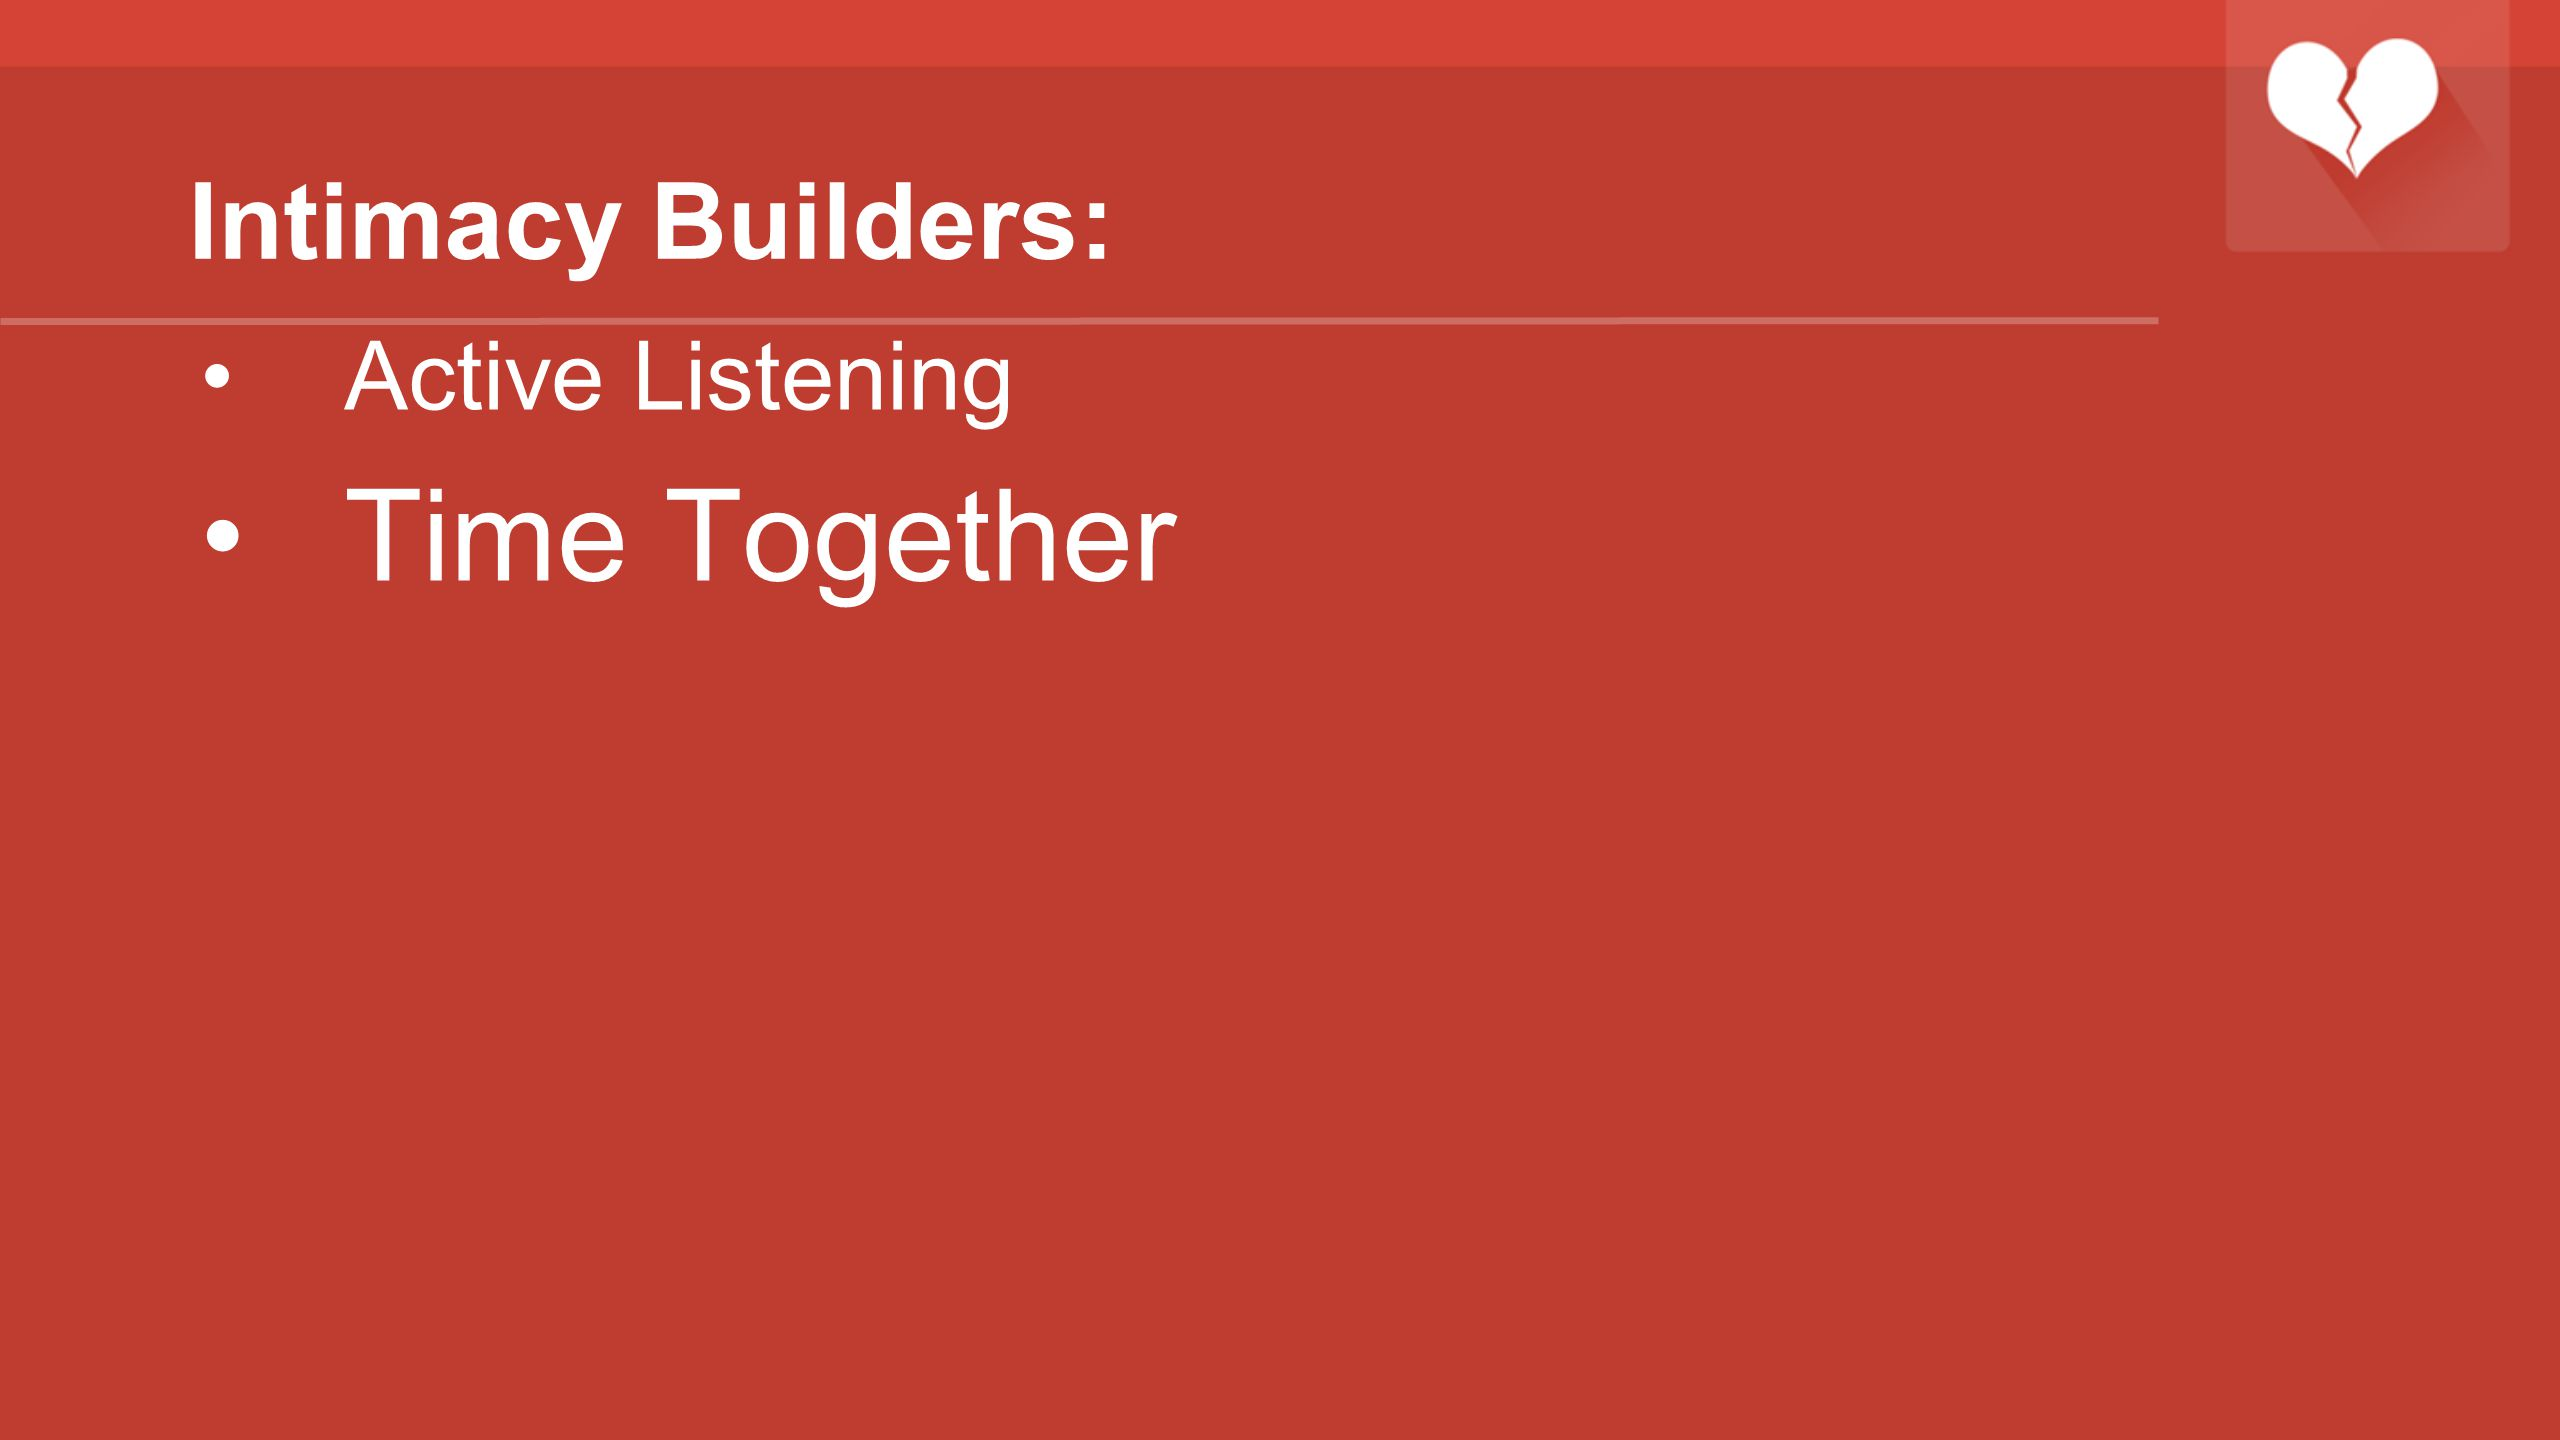 Intimacy Builders: Active Listening Time Together